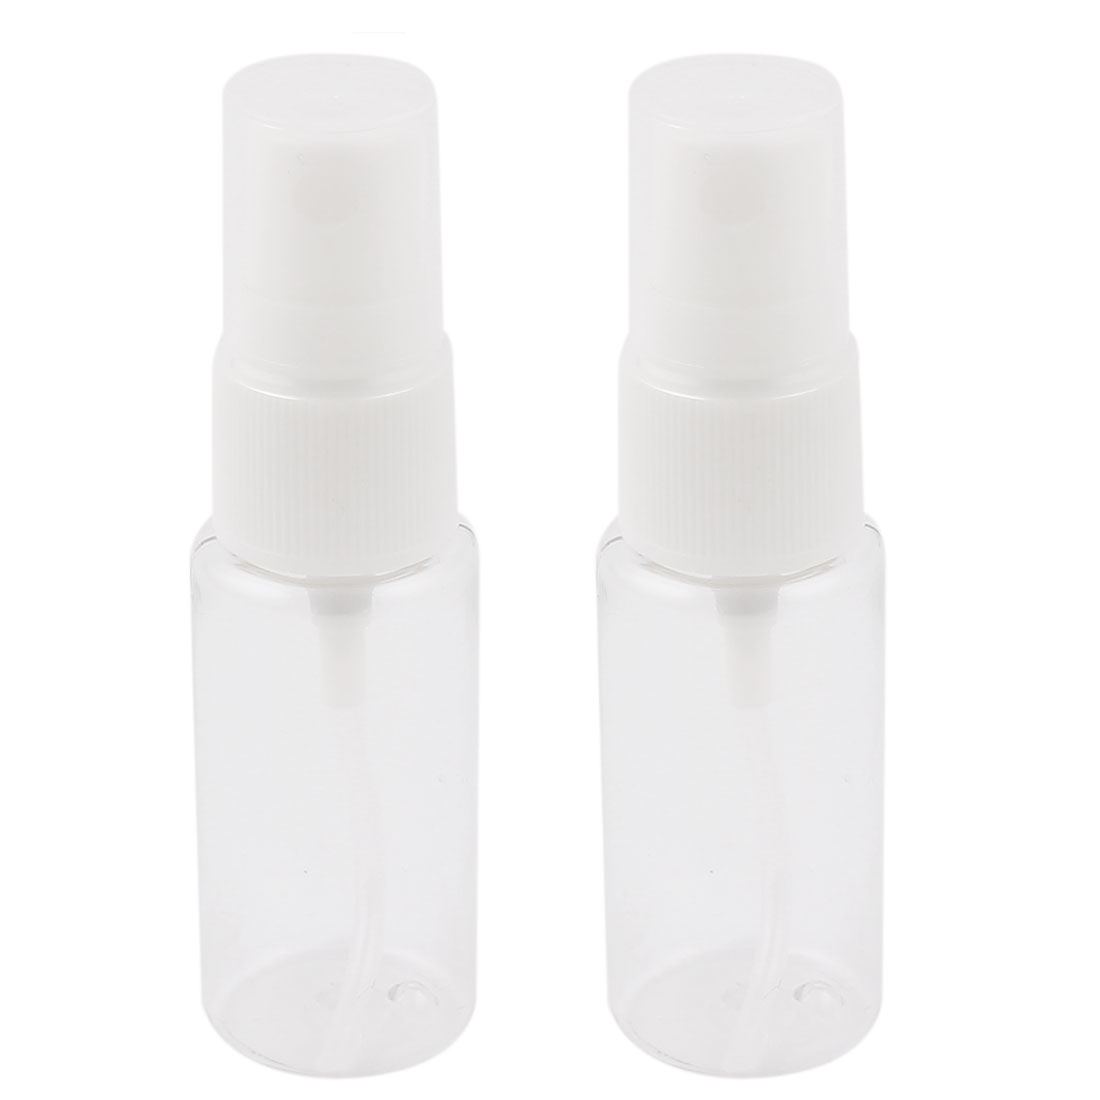 2PCS 20ml White Clear Cosmetic Makeup Perfume Container Water Liquid Holder Spray Bottles for Lady